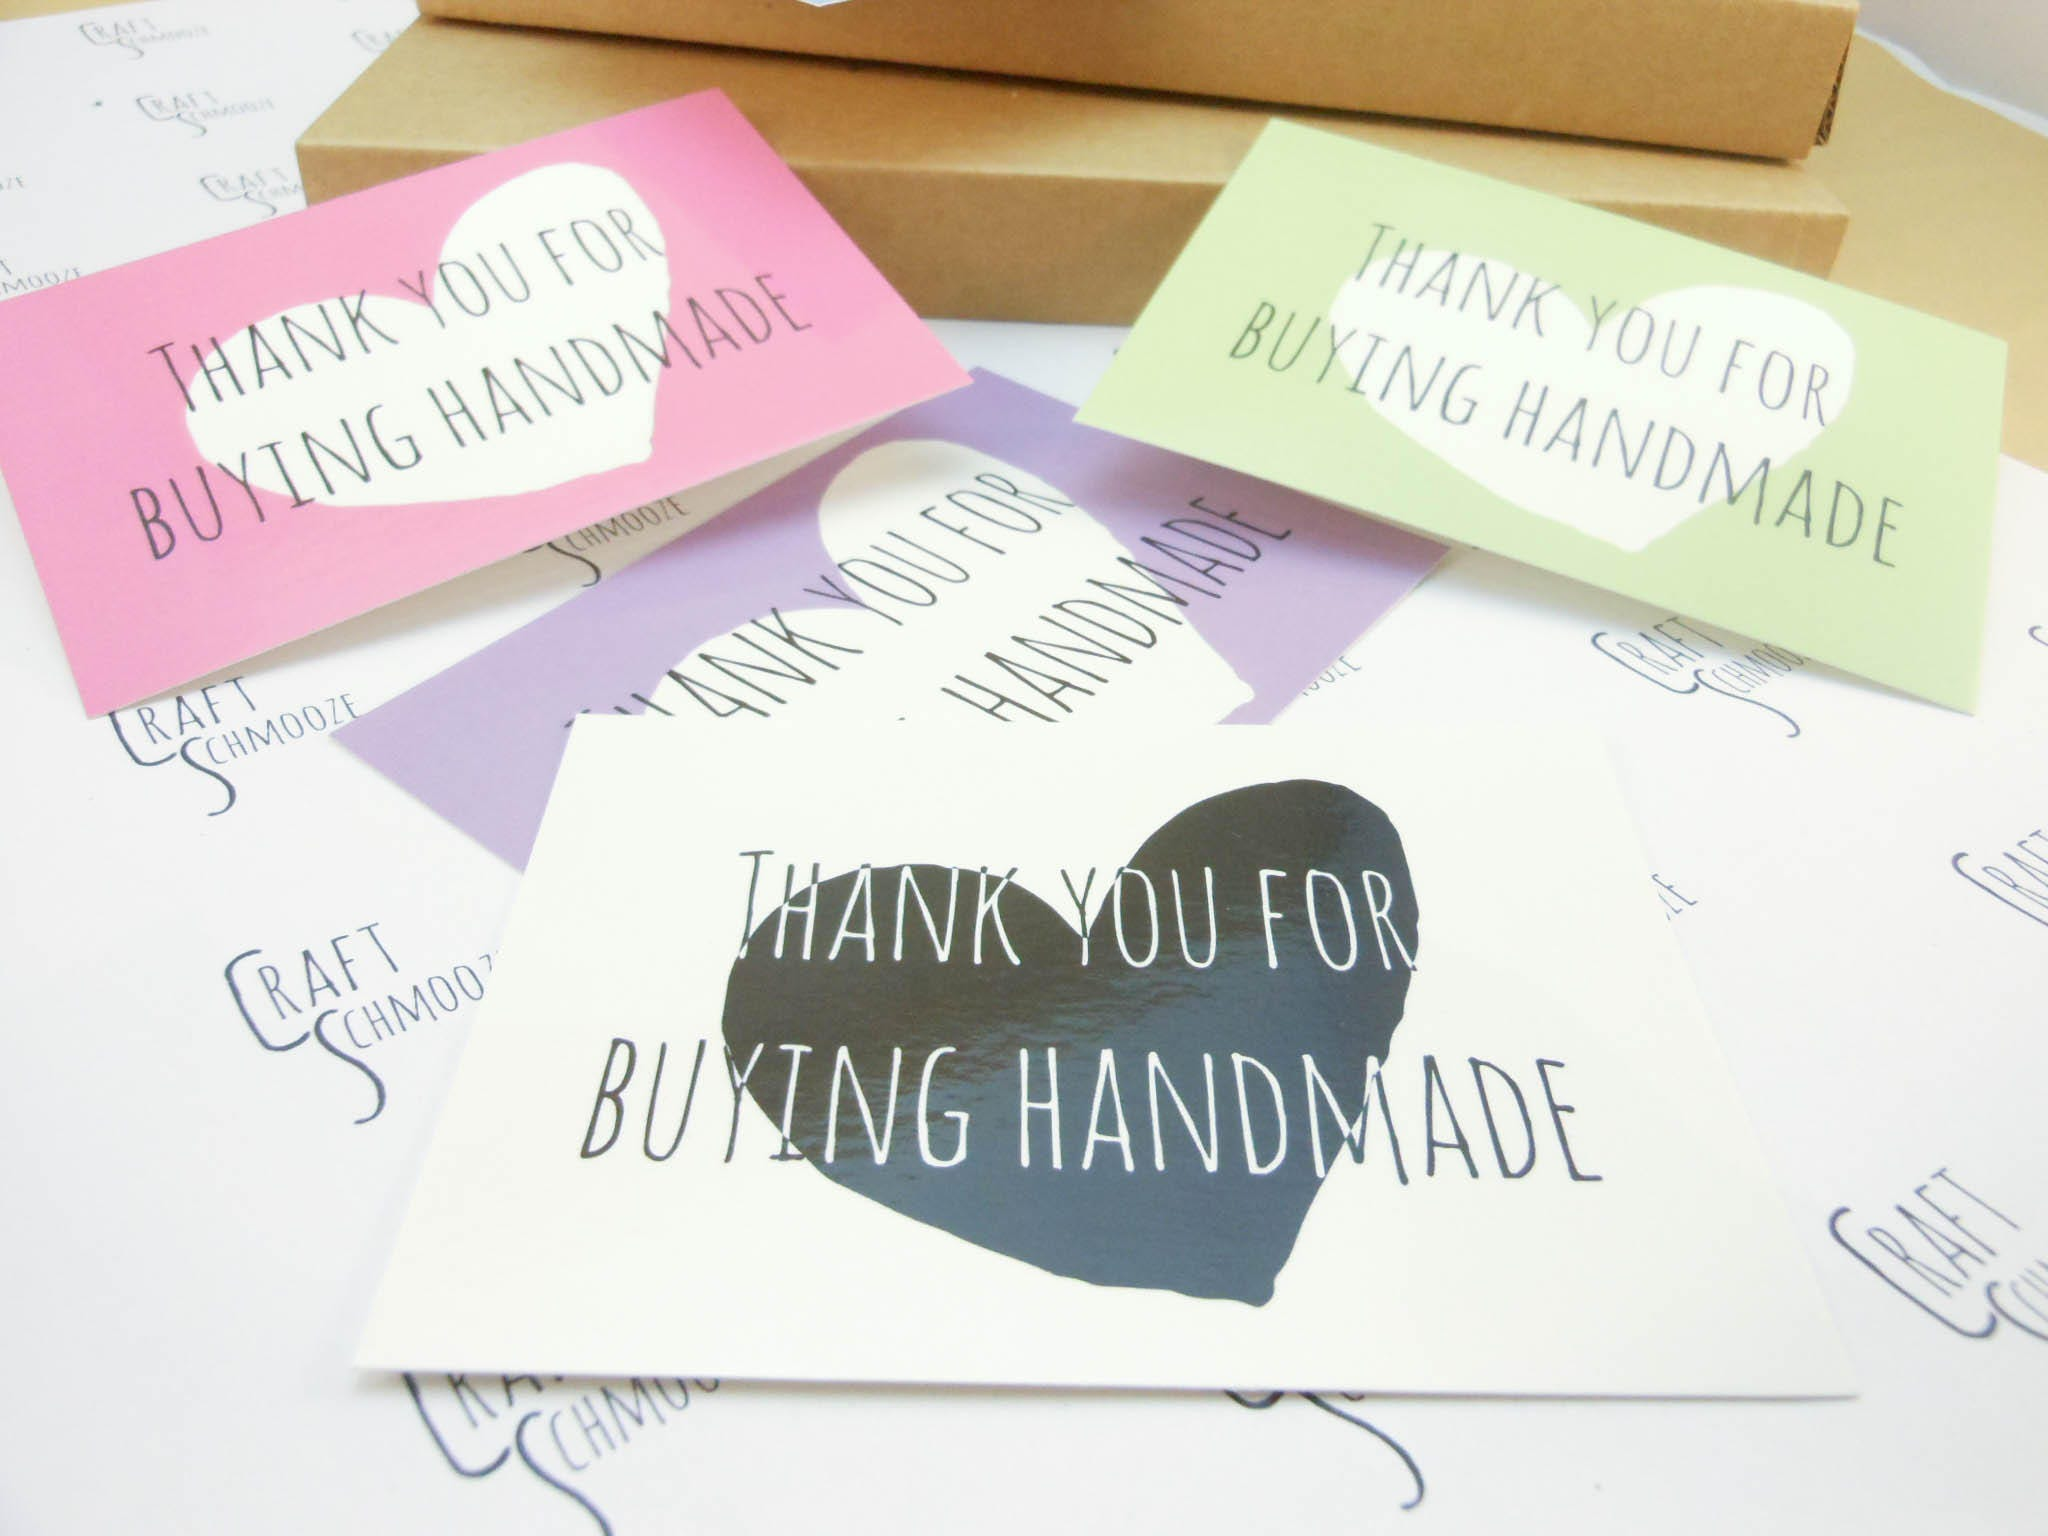 thank you for your order thank you card handmade etsy